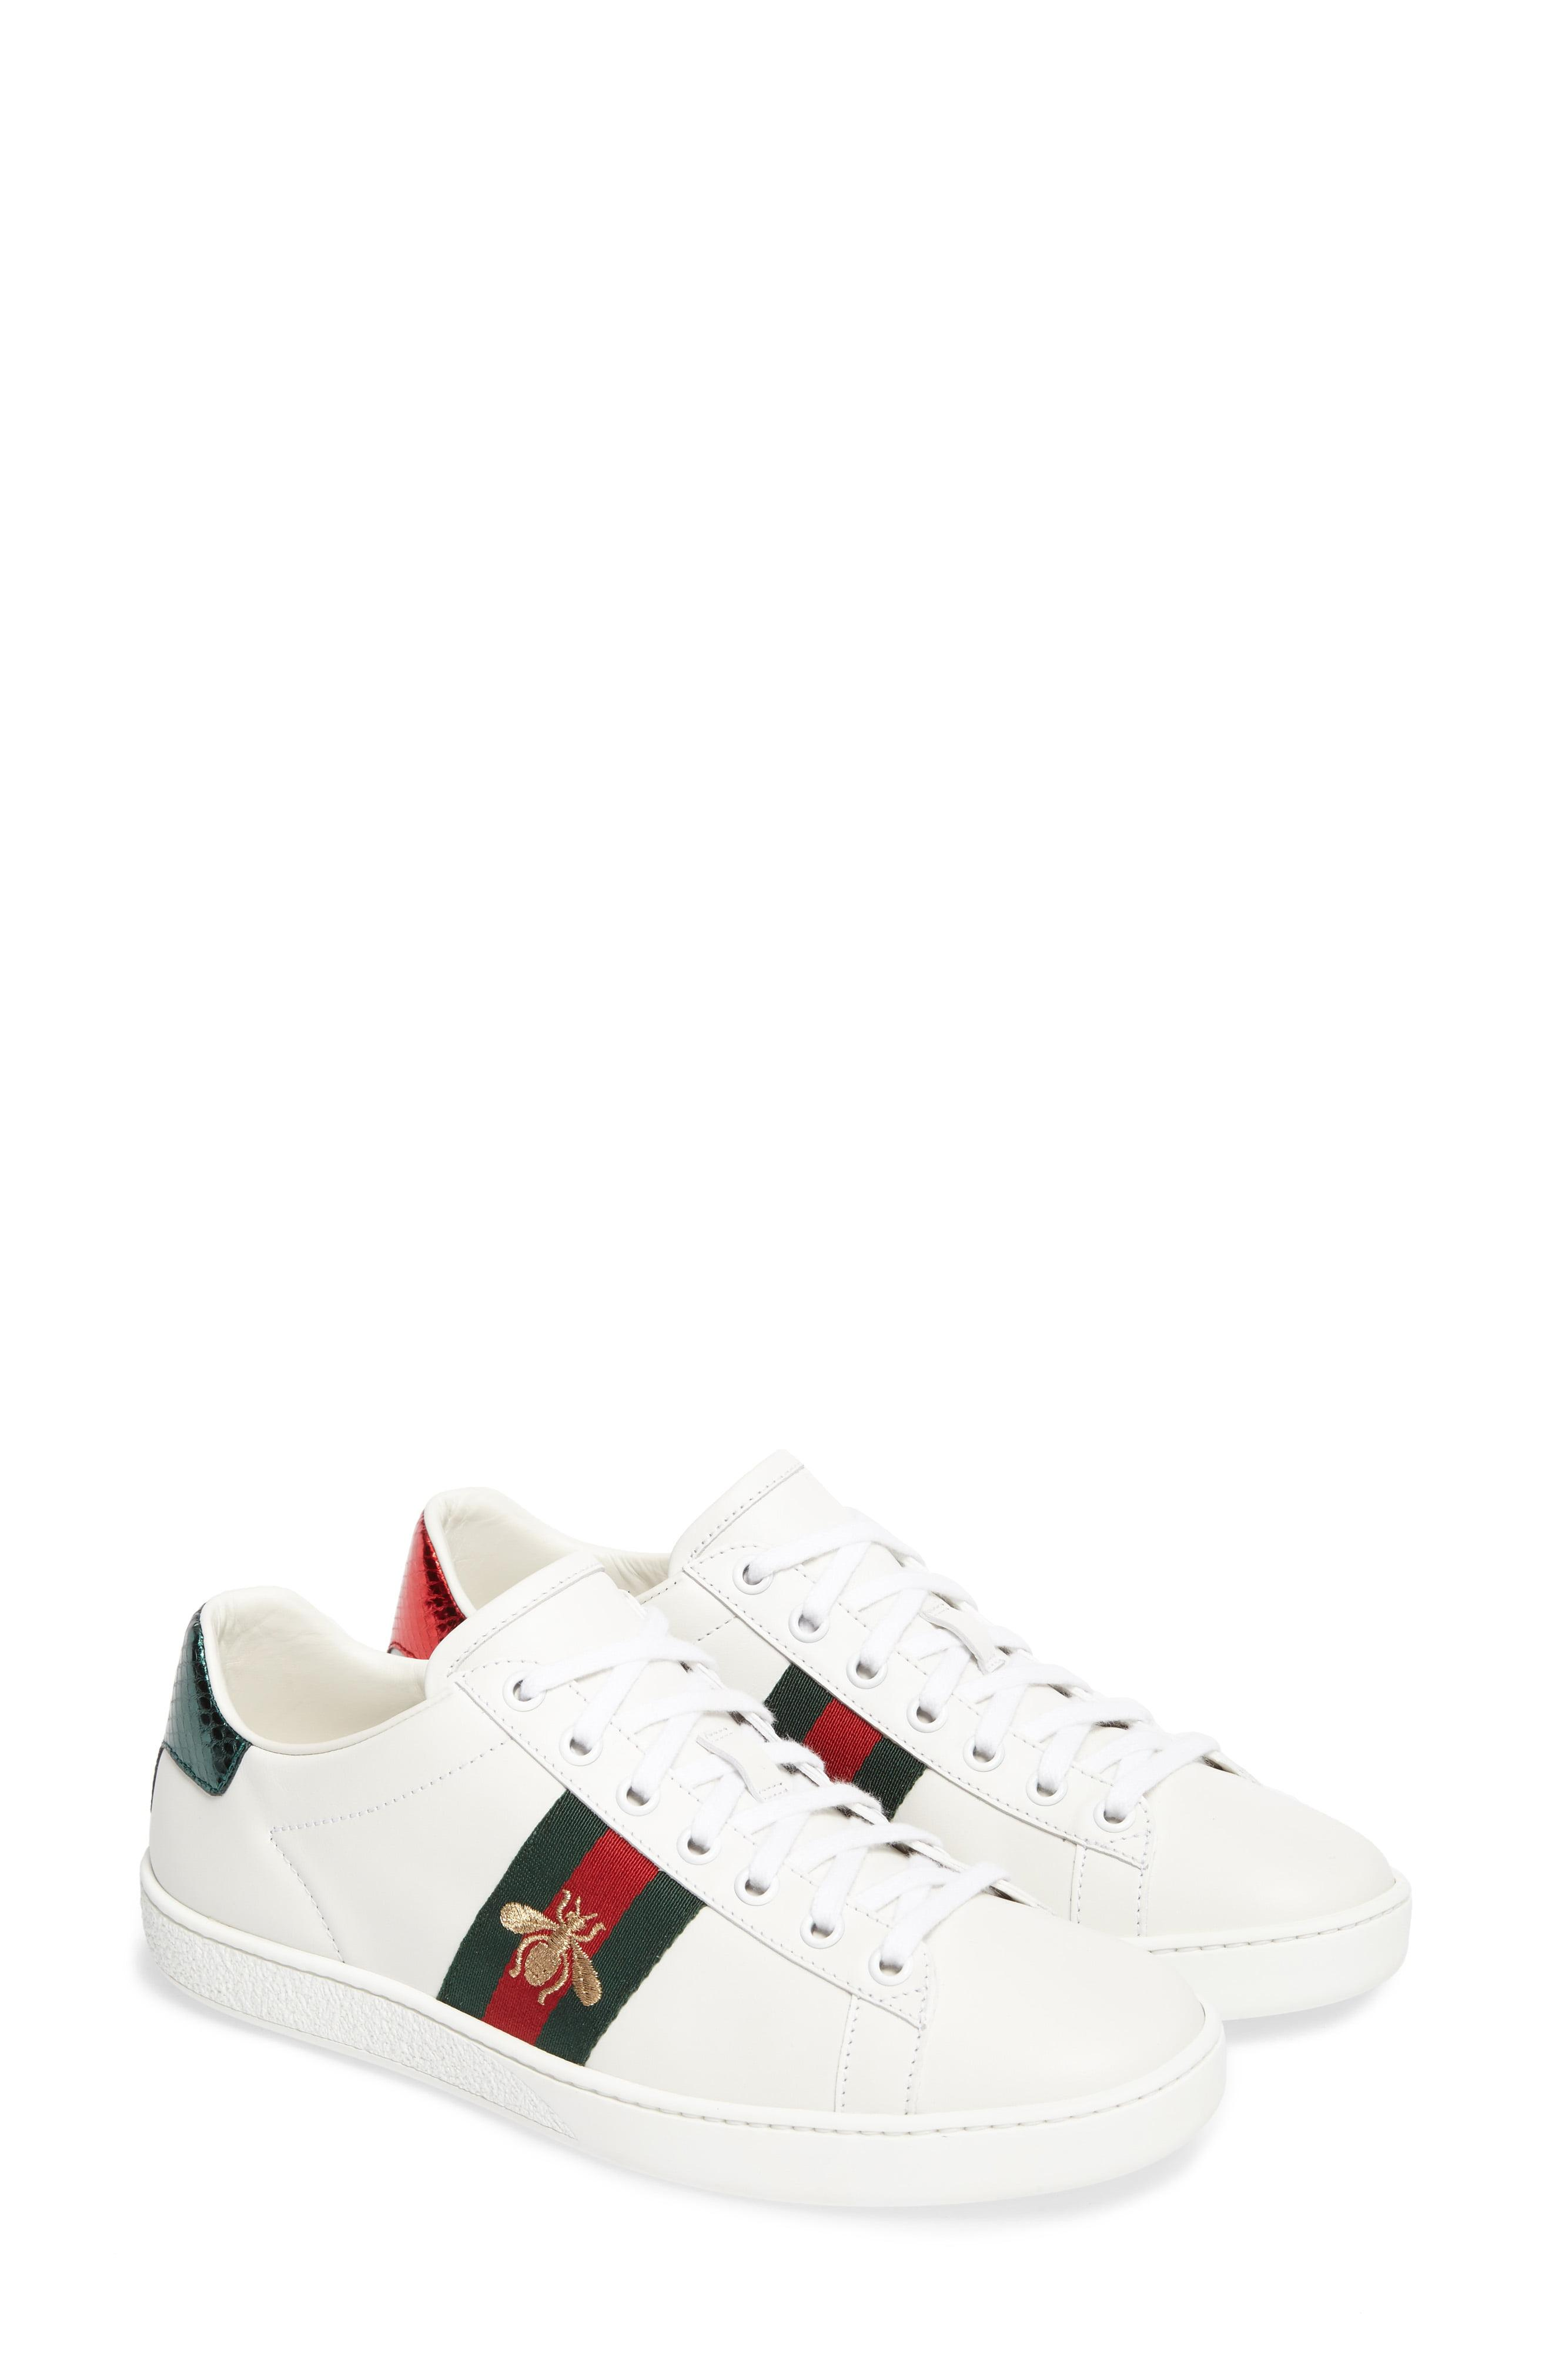 30b48f12c3f Lyst - Gucci New Ace Sneaker in White - Save 5%